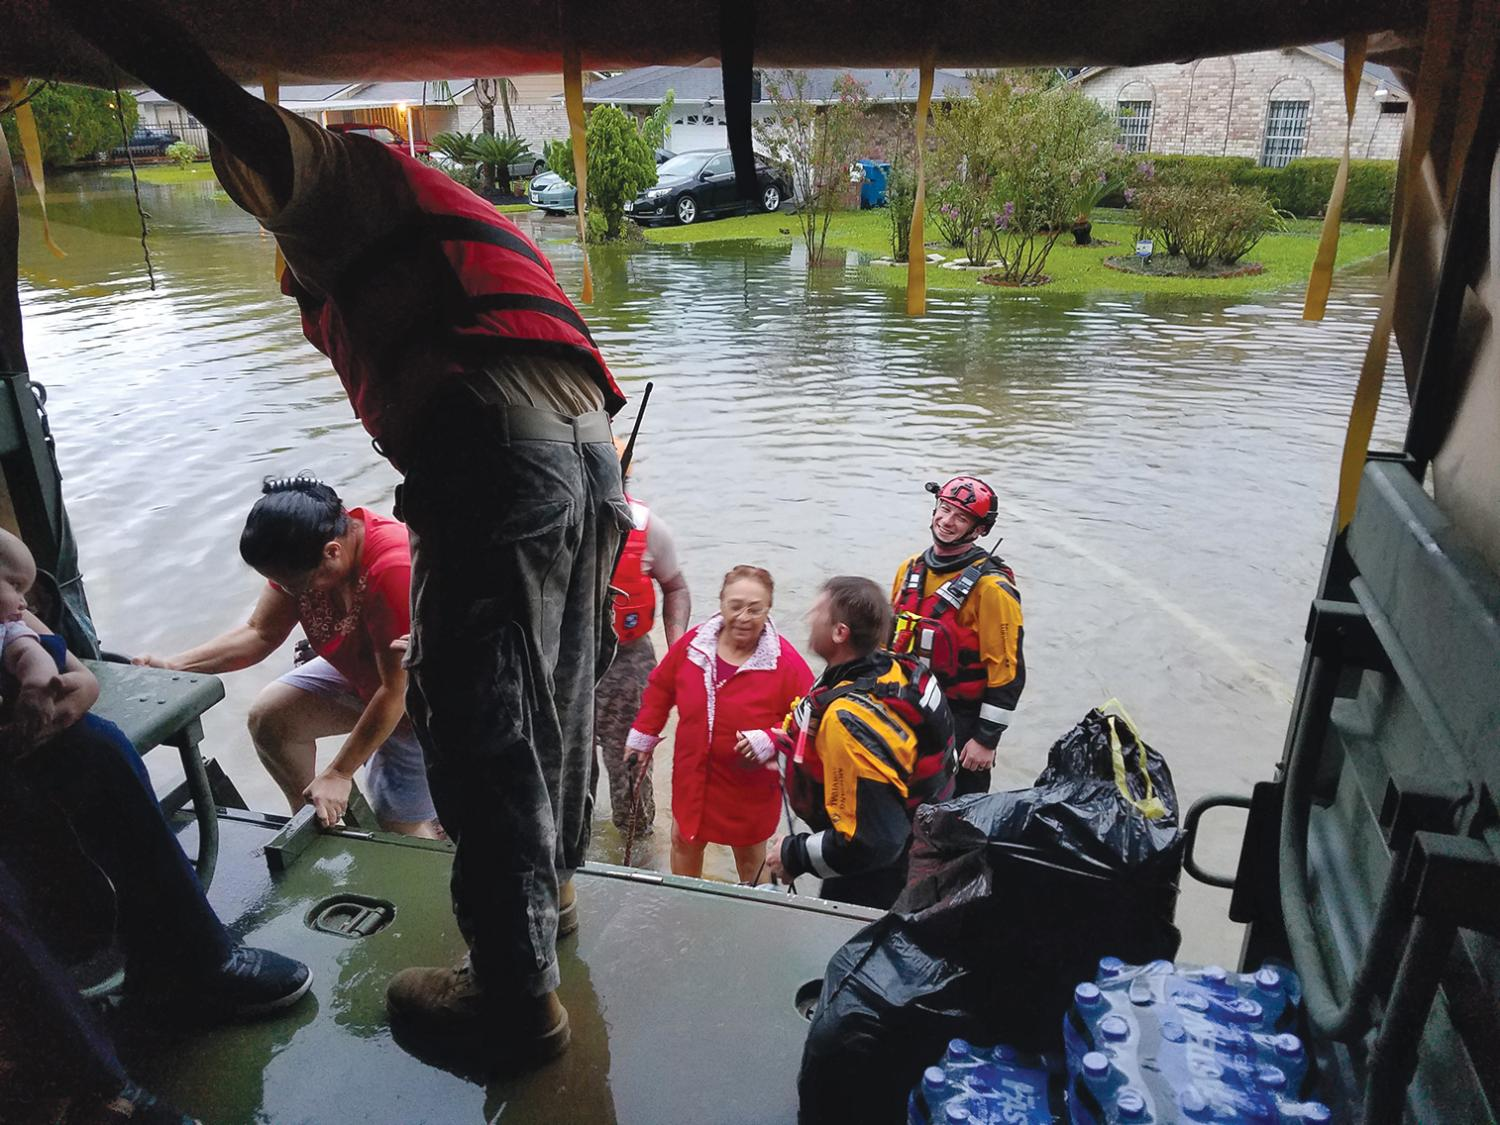 Rescuers assisting individuals standing in a flooded street